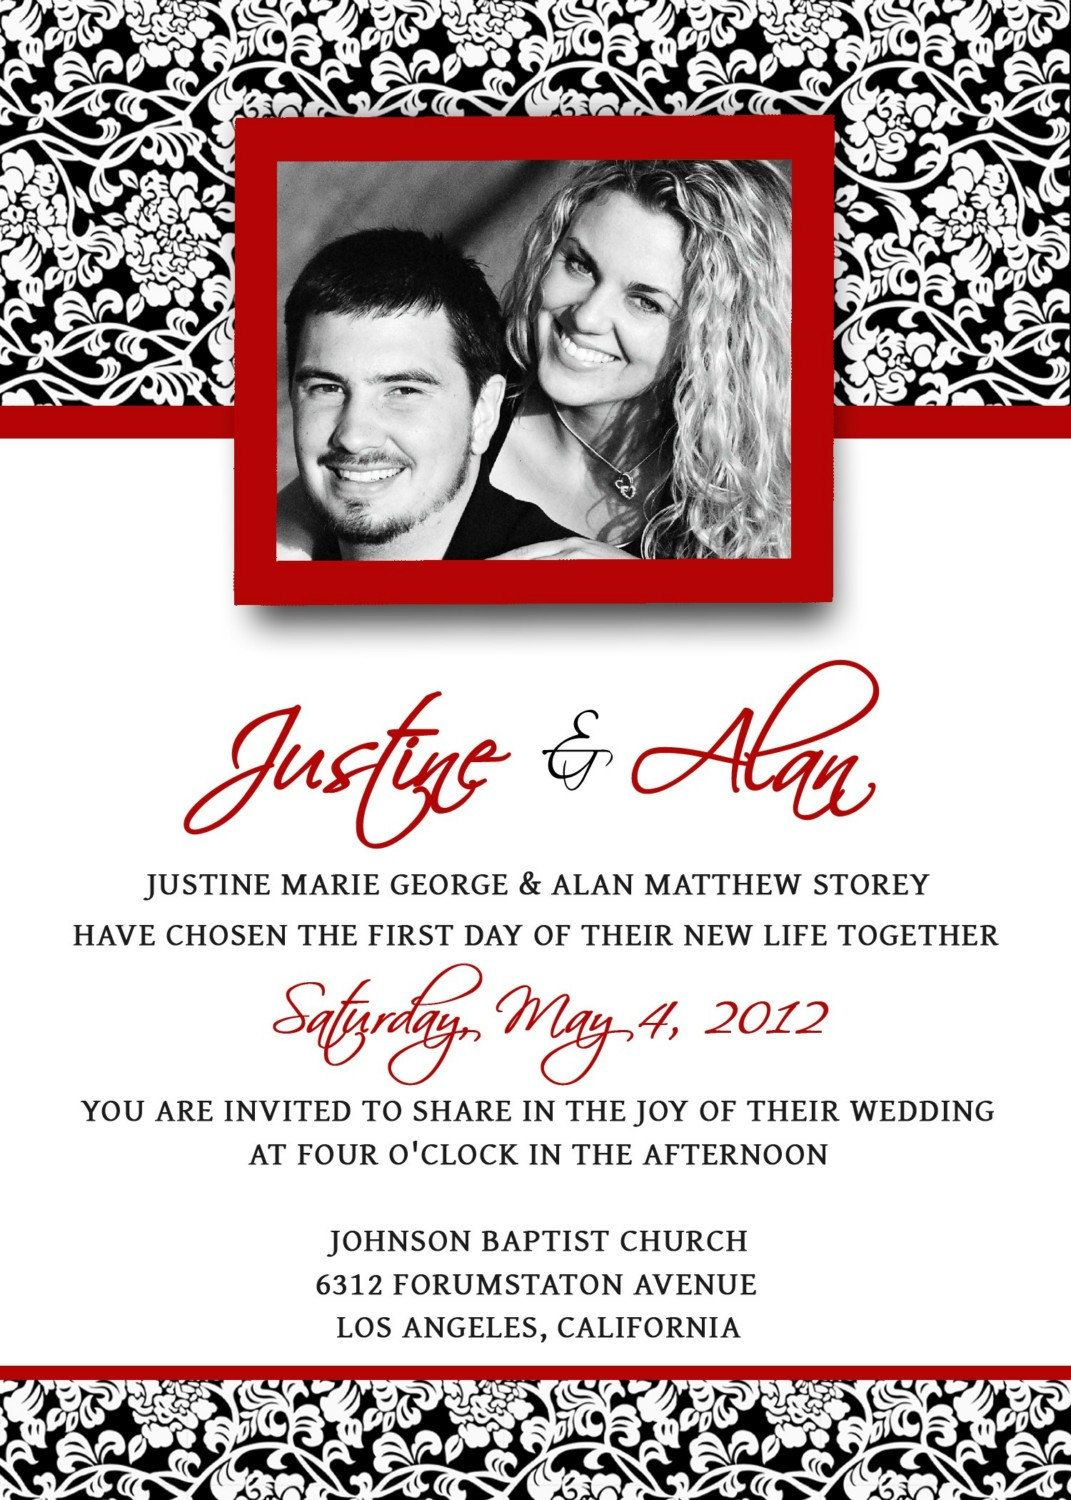 Wedding Invitations Template - PSD - Photoshop Gimp ...